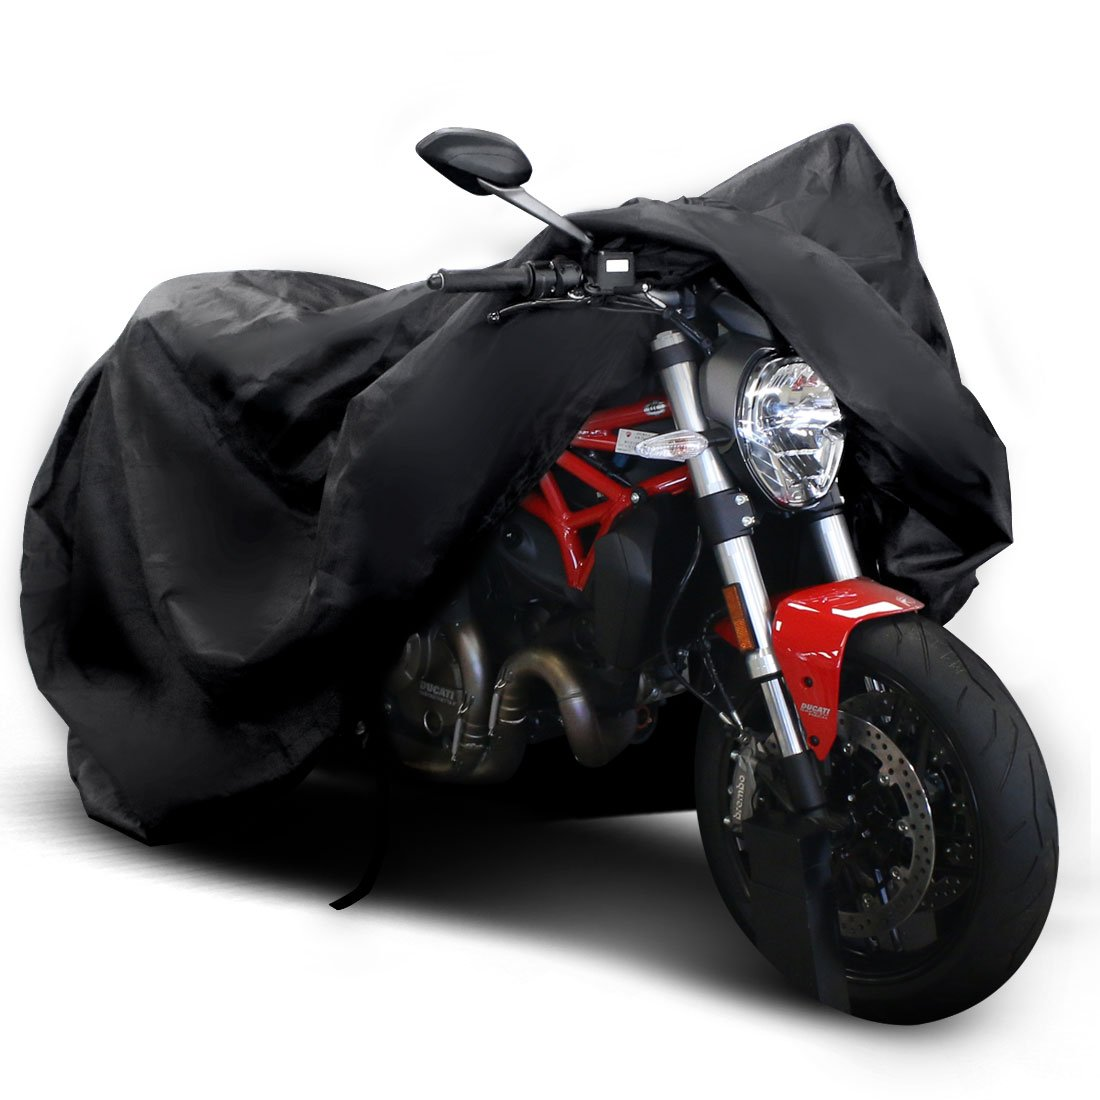 "Copap Black Motorcycle Cover 150D Durable Waterproof Motorcycle Cover All-Weather Protection with 7.87"" Reflective Stripe, Bottom Buckle & Lockholes Included"